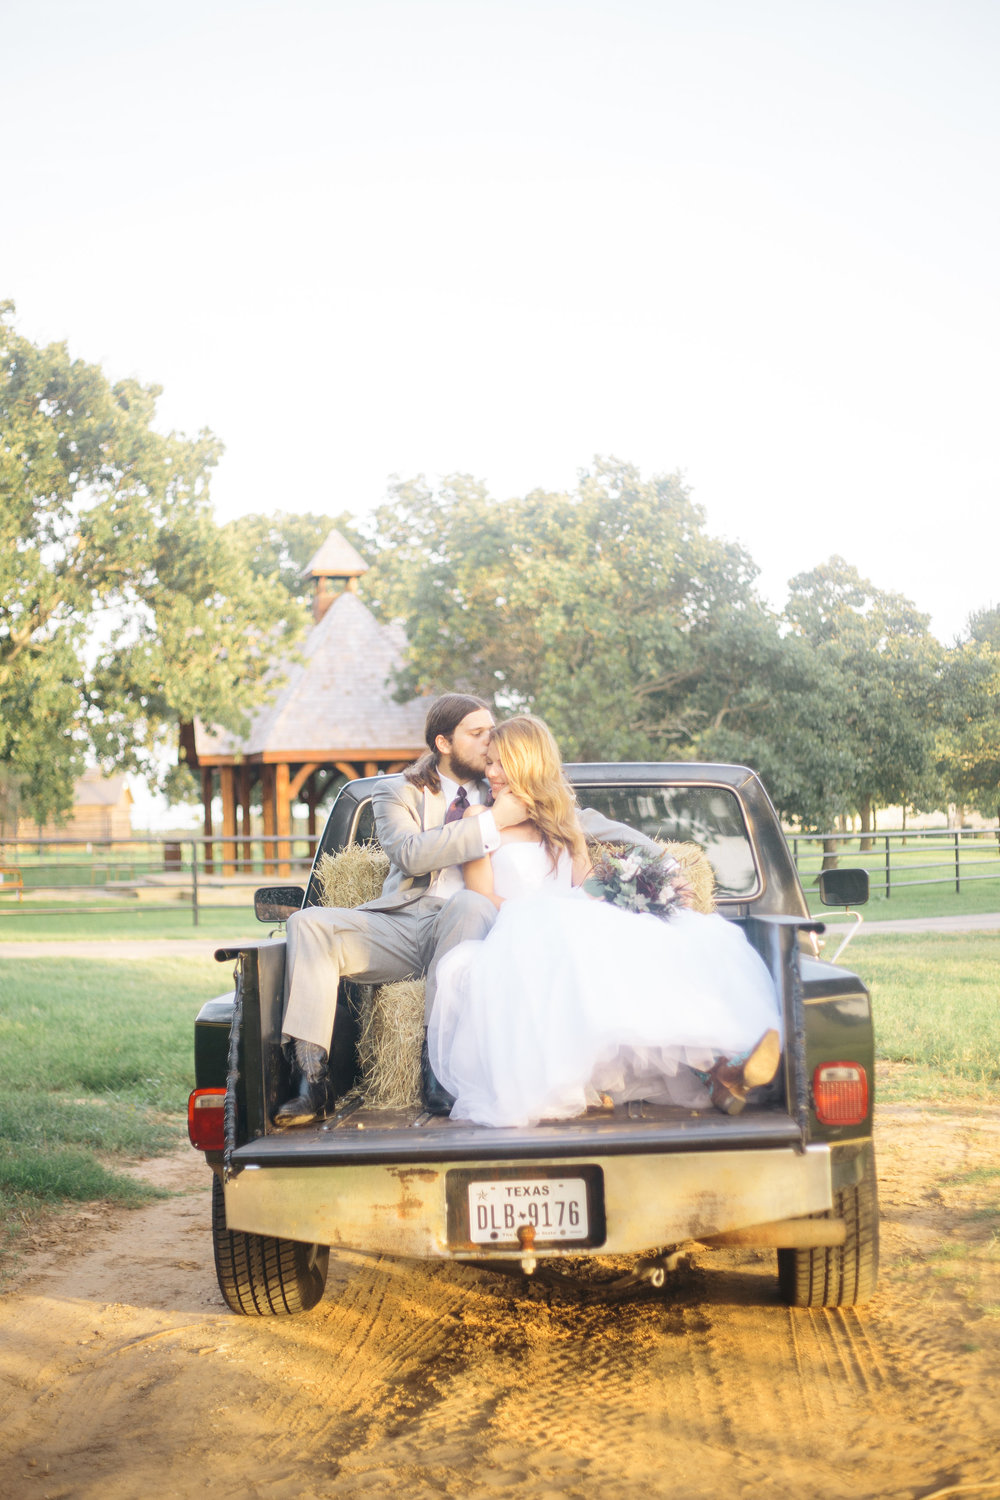 Bride & Groom In back of Old Truck